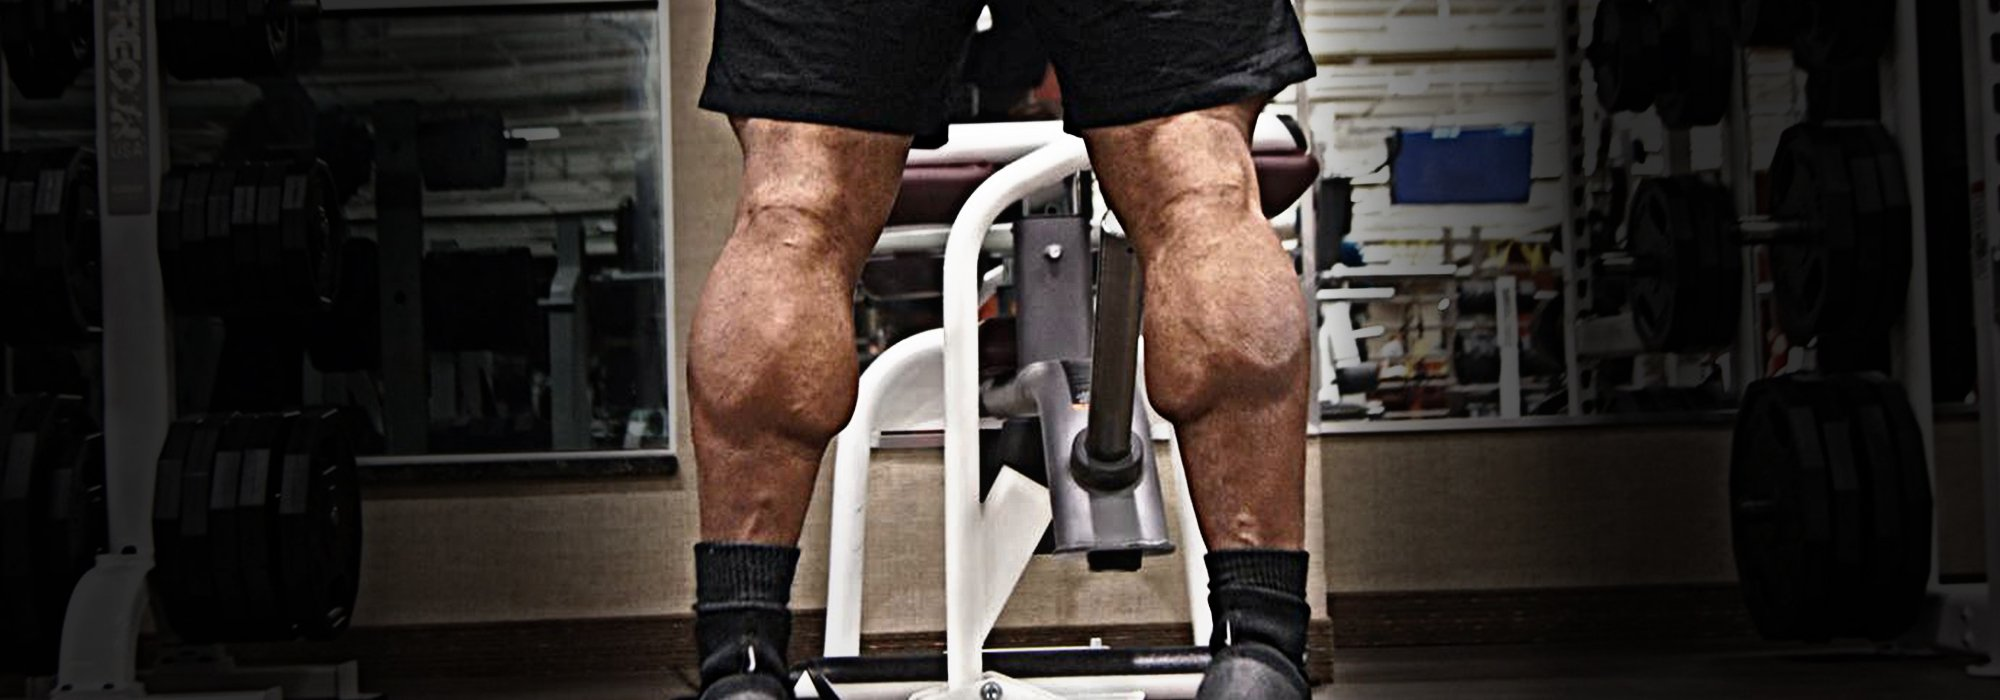 Diamond Shaped Calves - Calf Training To Improve The Look Of The Entire Lower Body